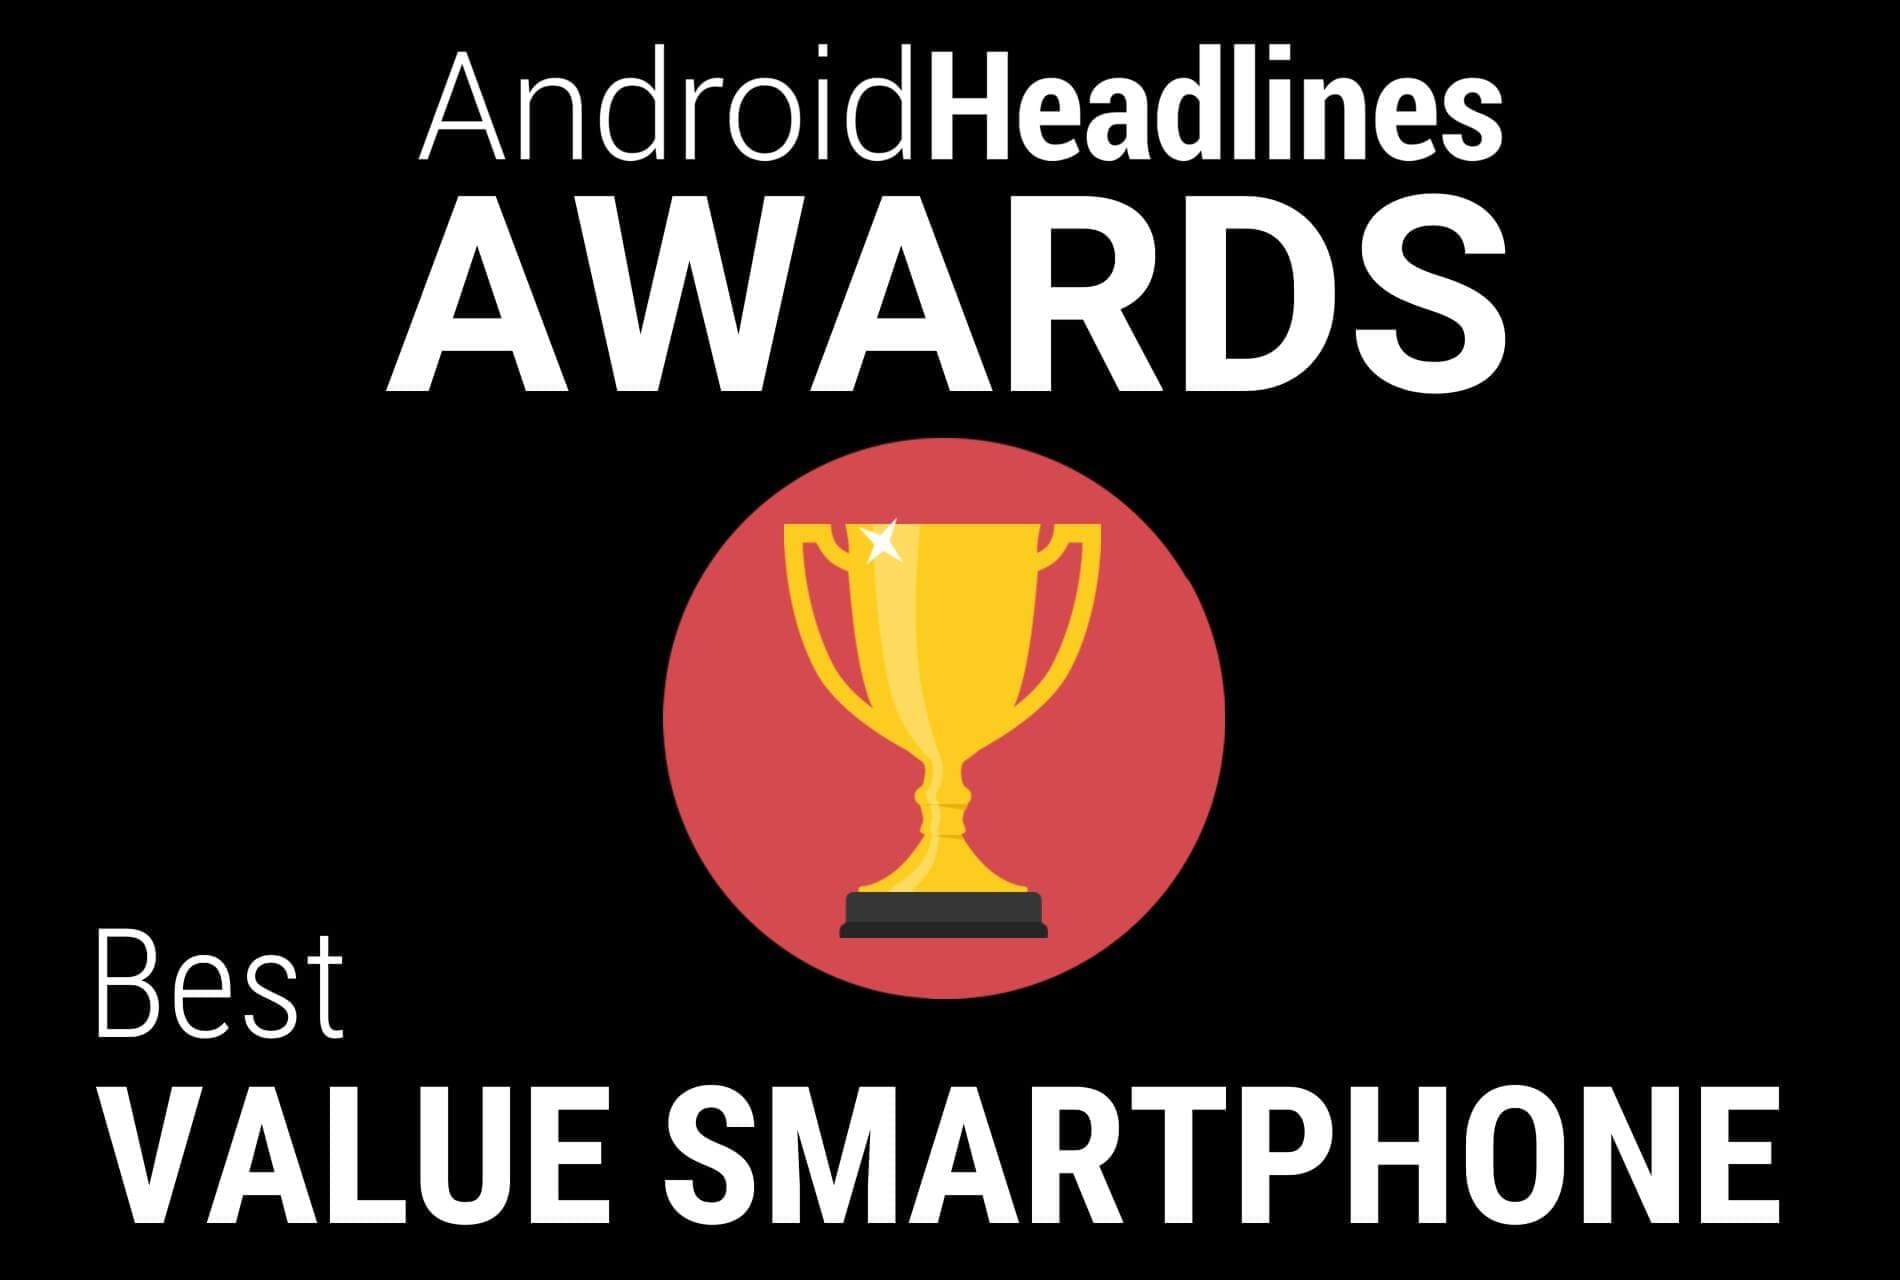 AH Awards 2015 Best Value Smartphone